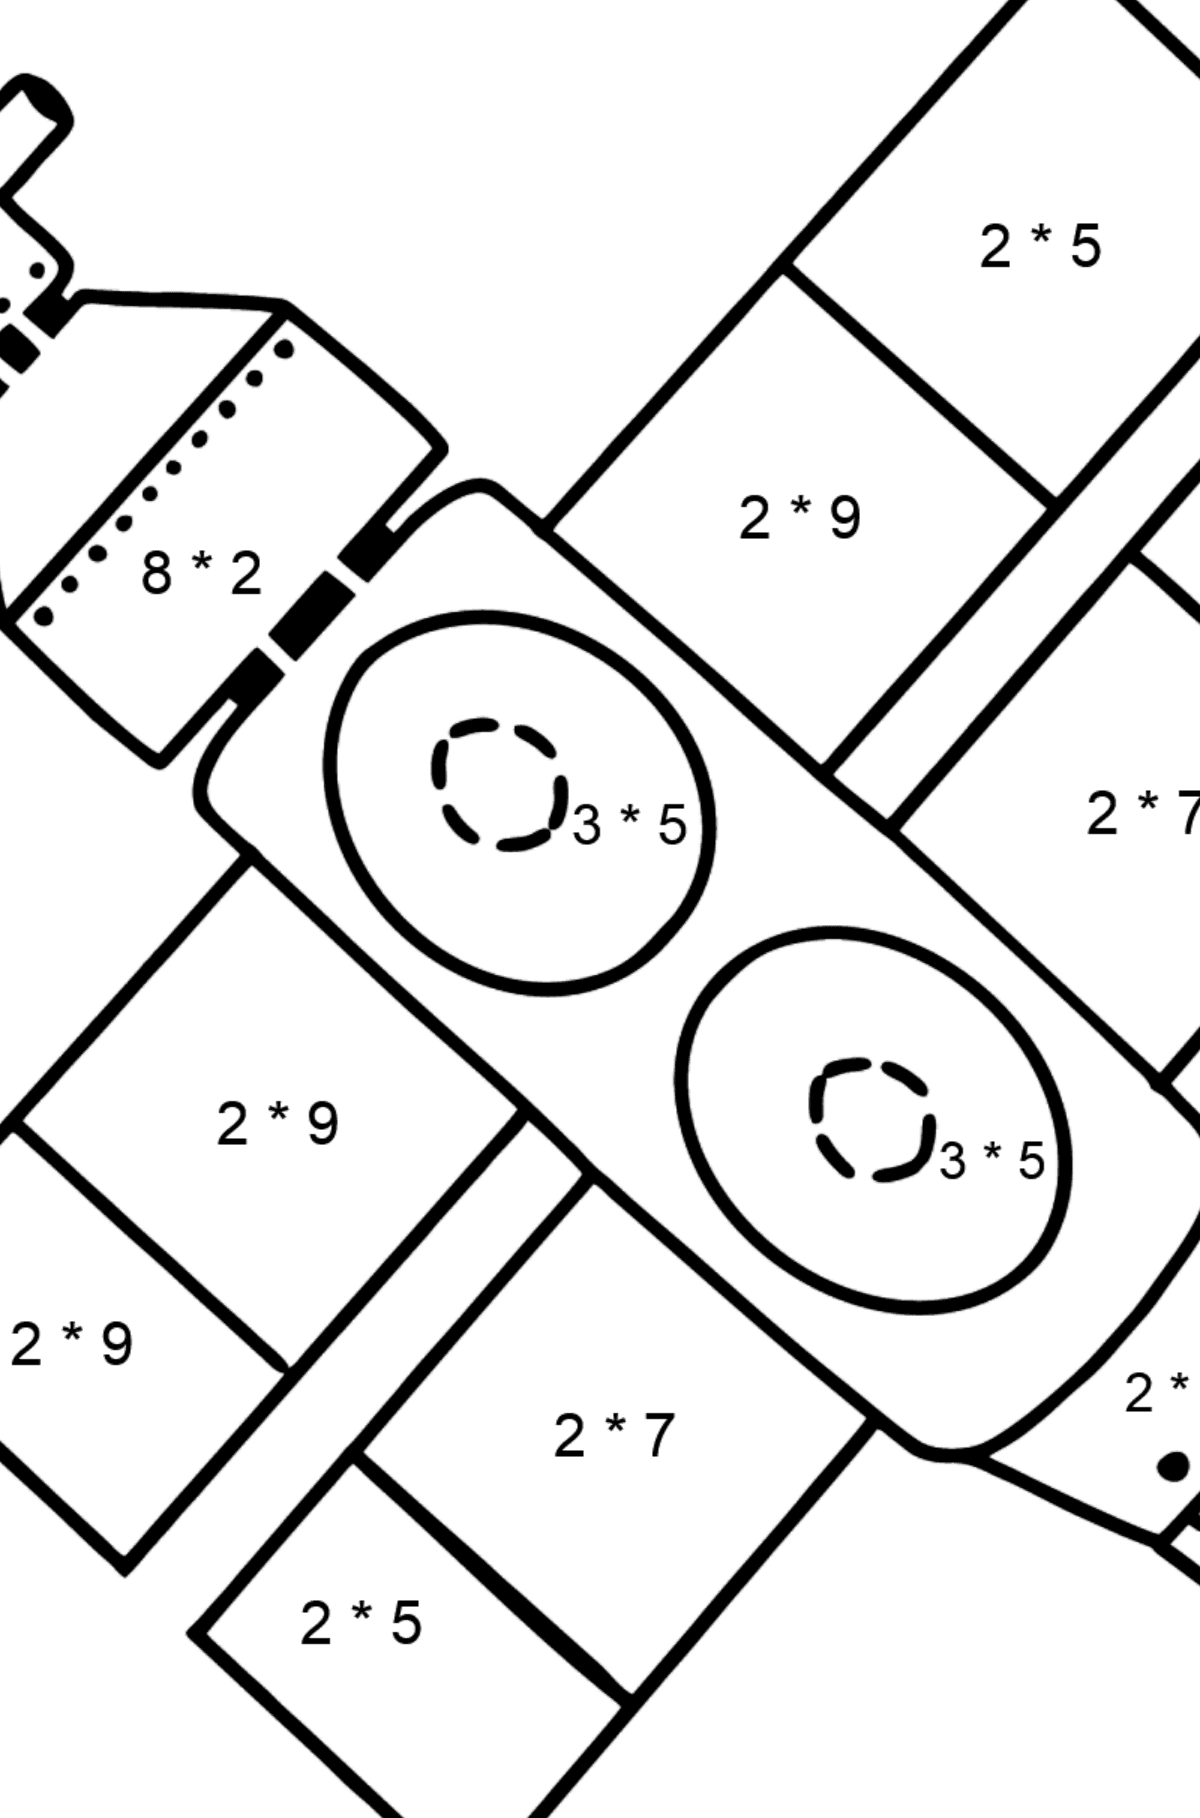 Spaceship coloring page - Math Coloring - Multiplication for Kids